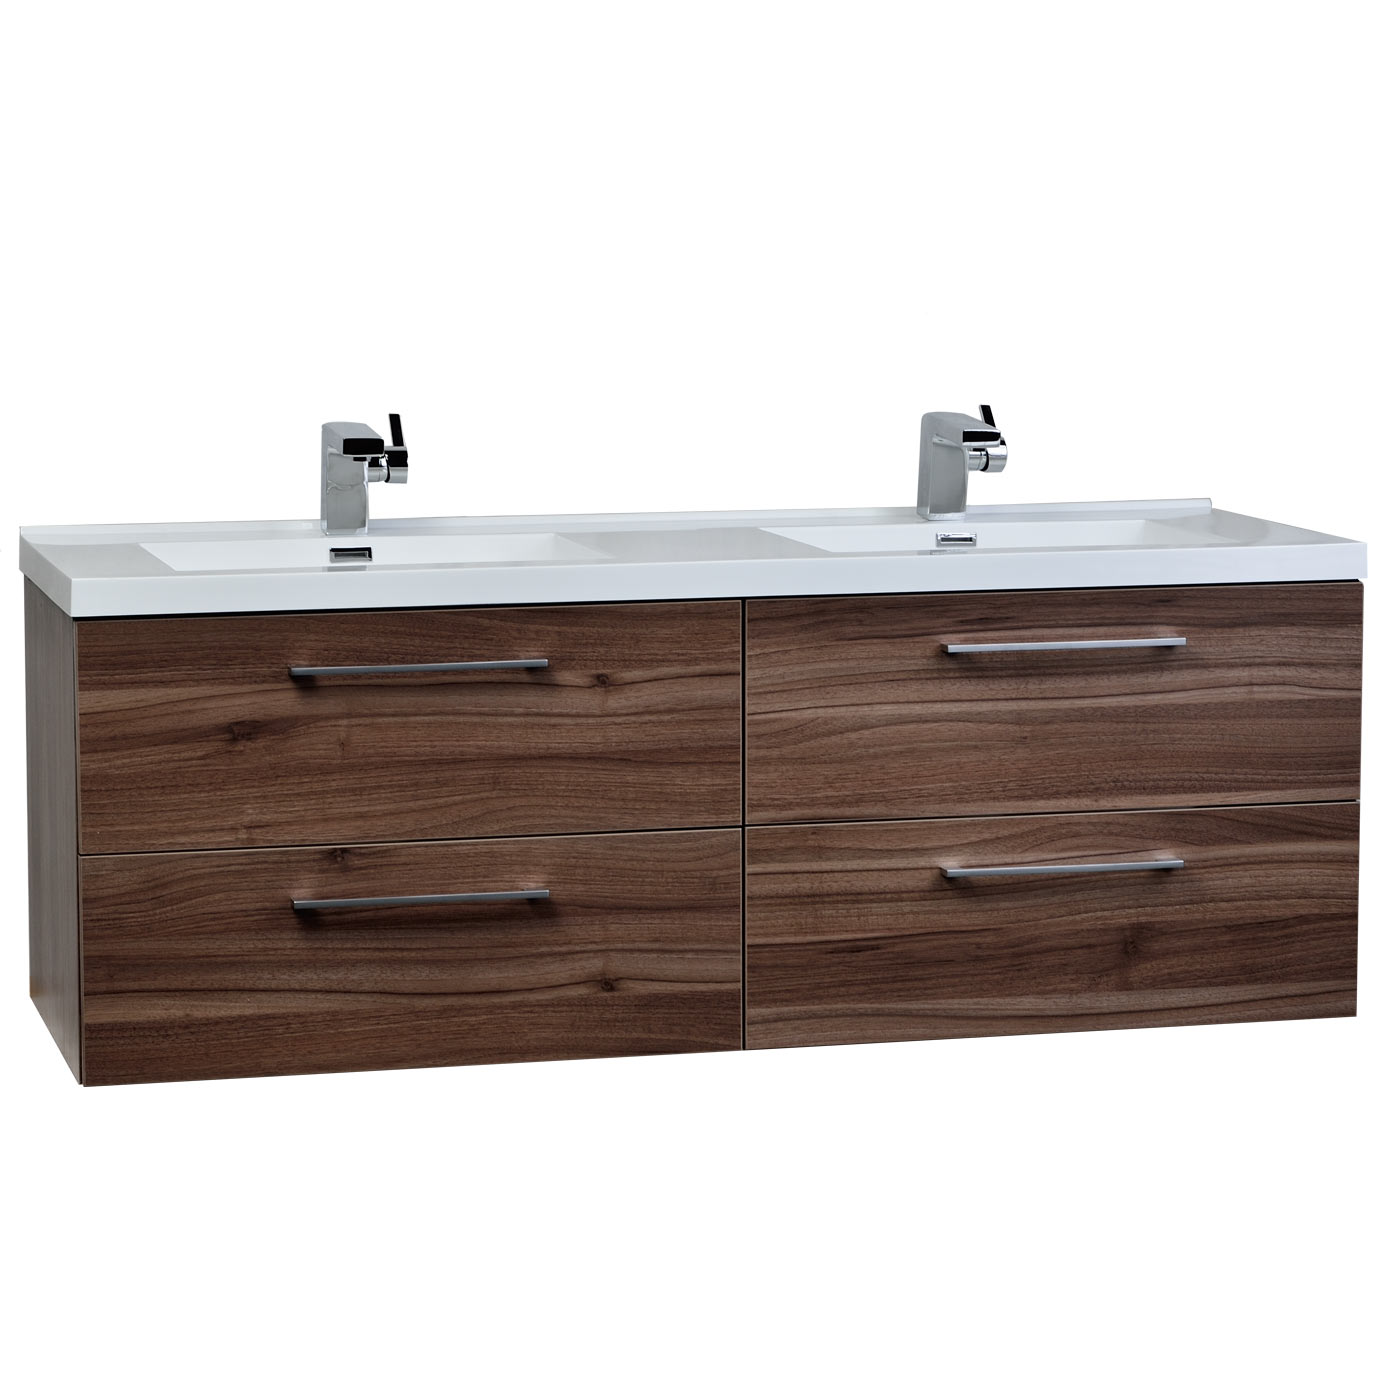 Buy Bathroom Vanities In San Francisco Bay Area